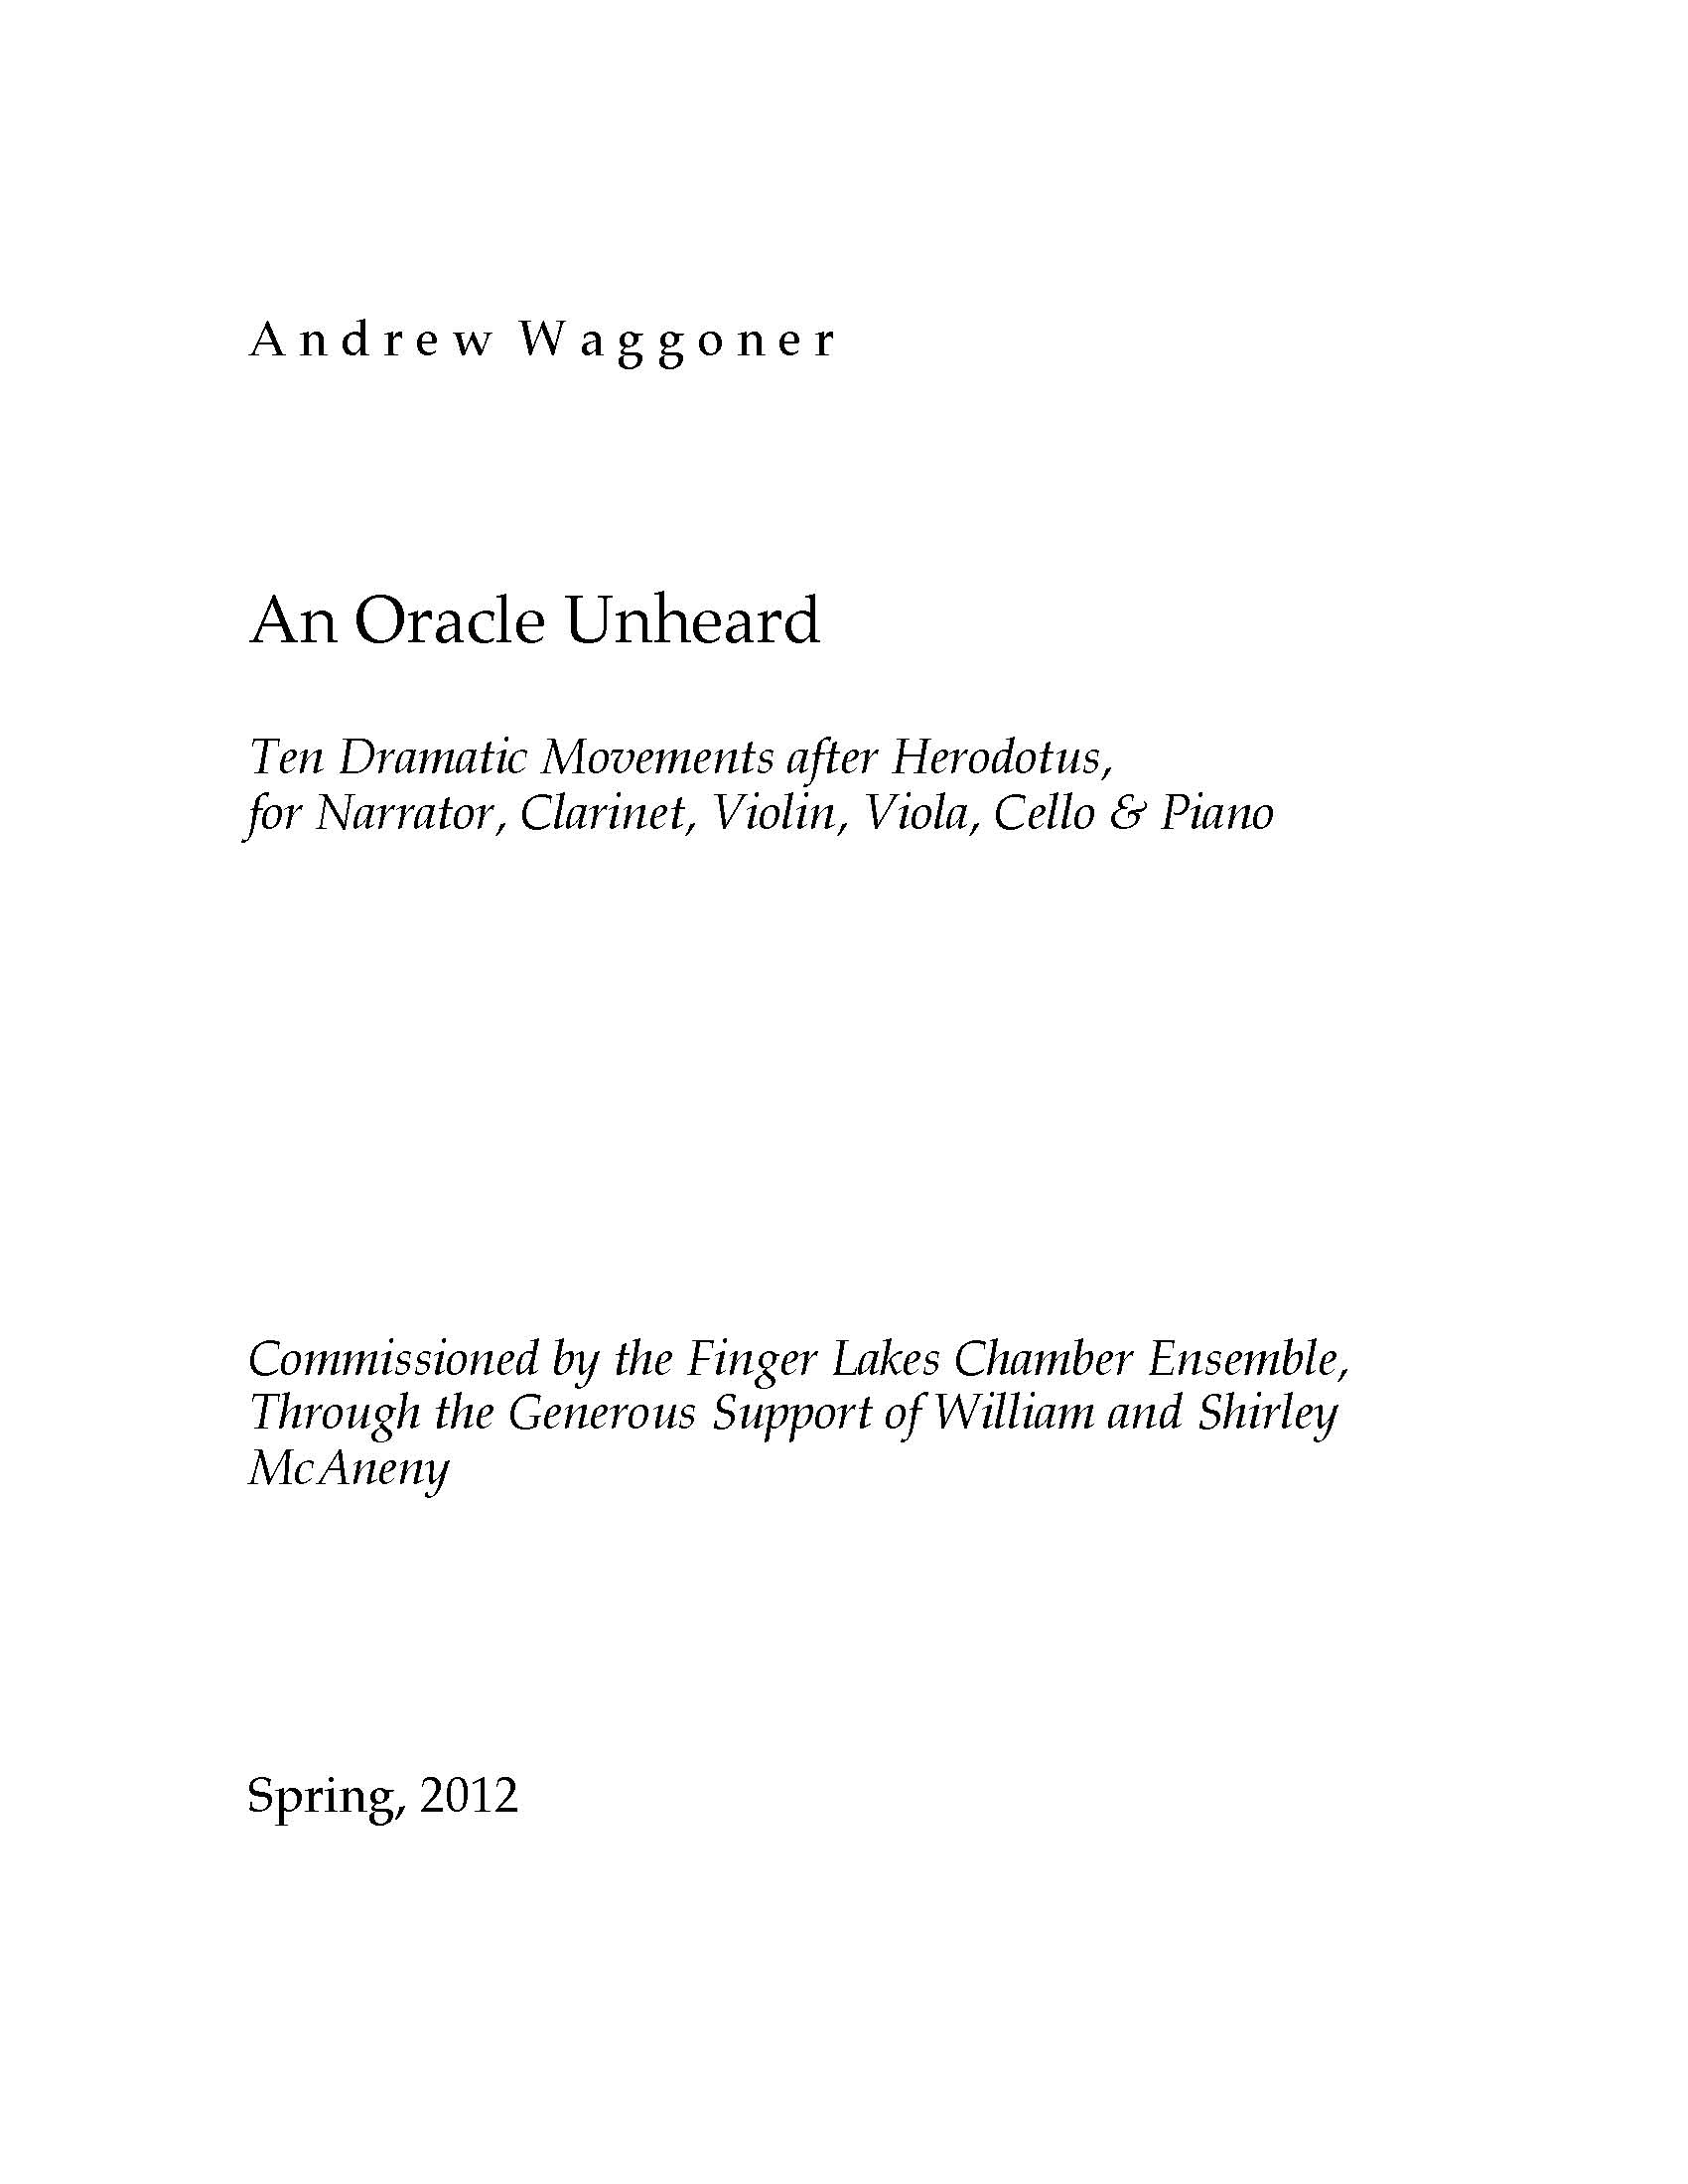 An Oracle Unheard for Narrator, Clarinet, Violin, Viola, Cello & Piano